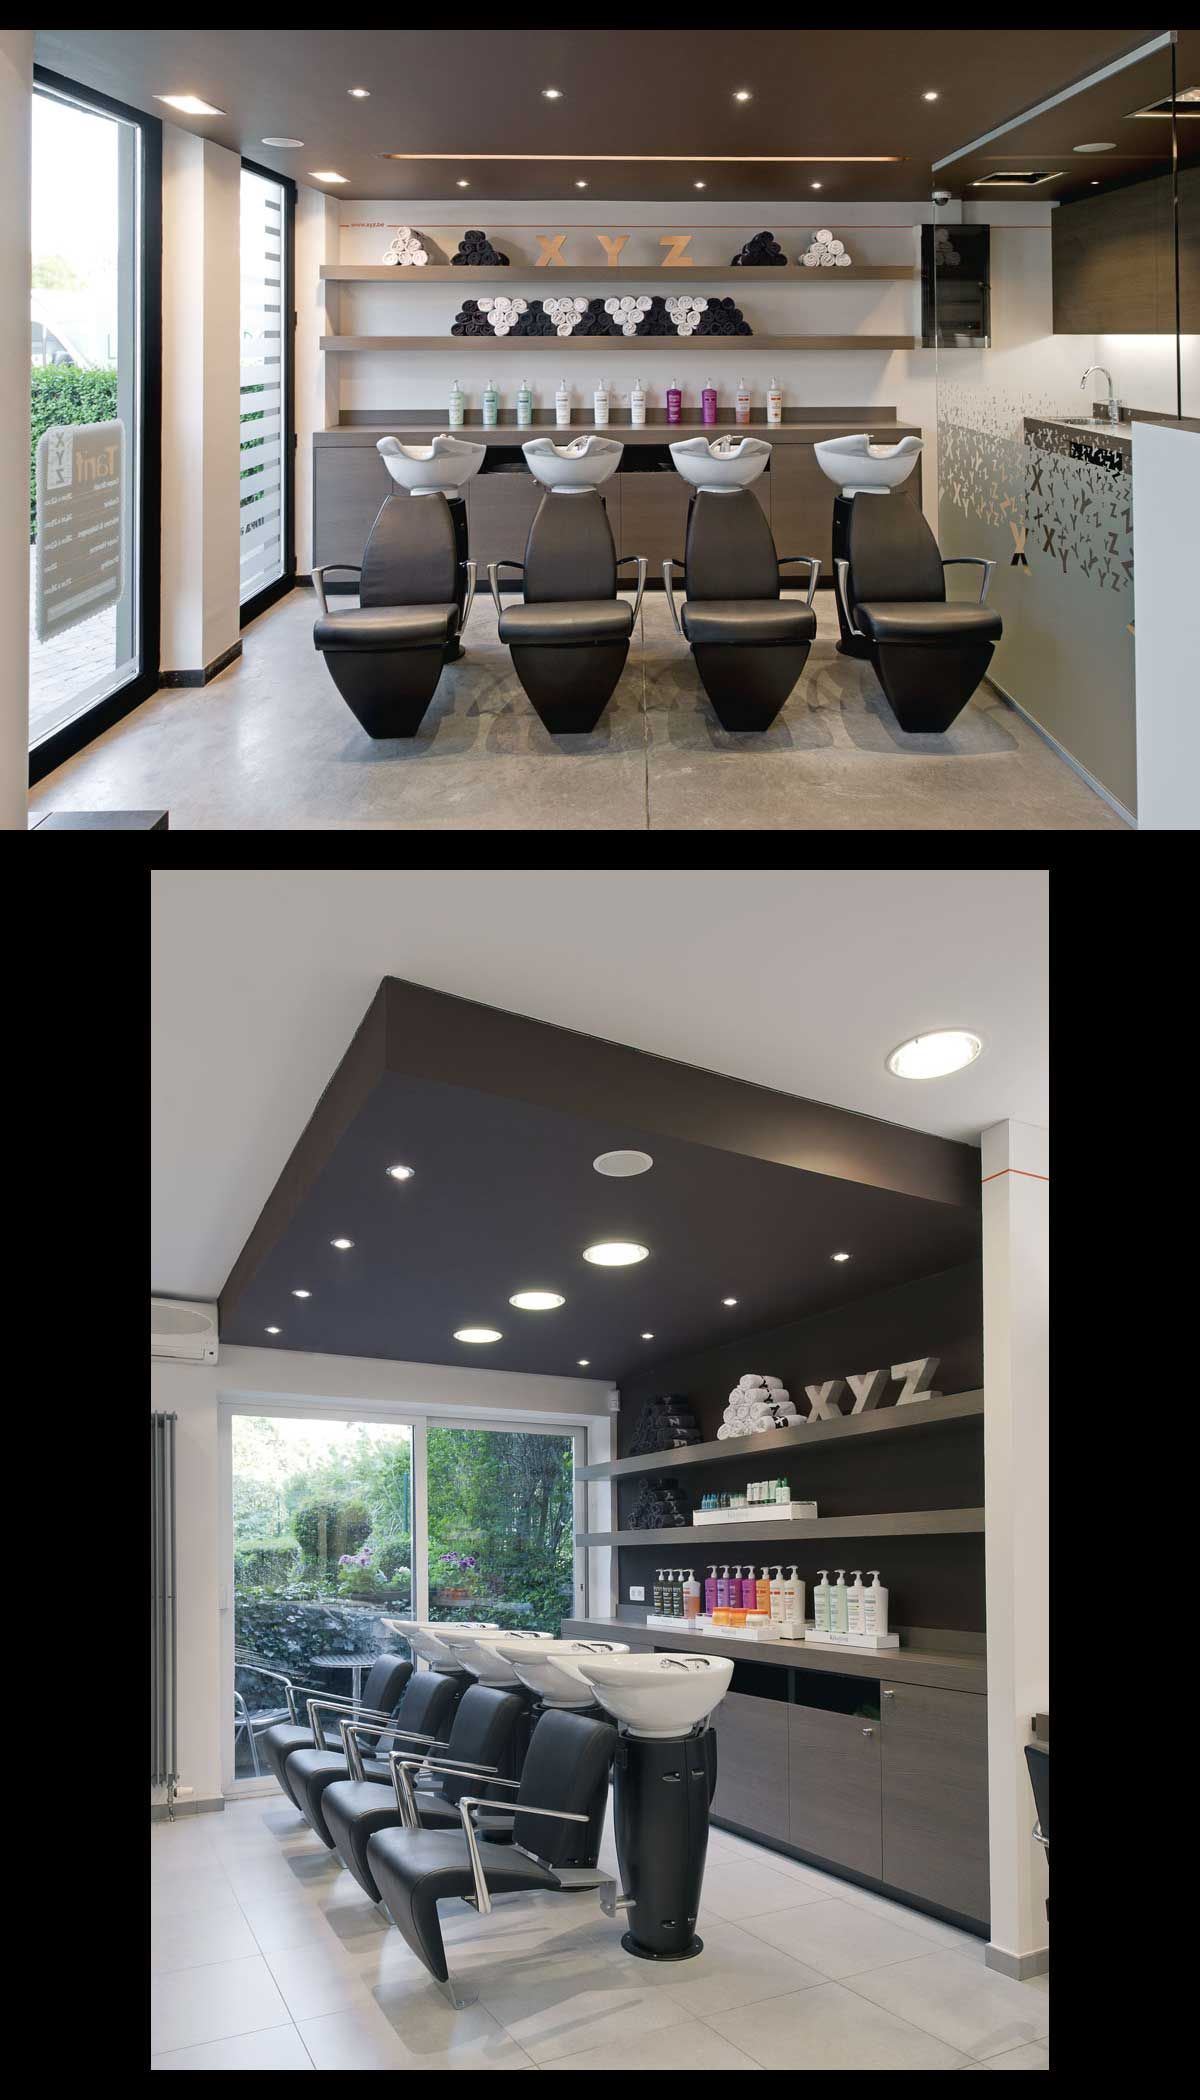 15 Ideas For A Stylish Beauty Salon – decoratoo